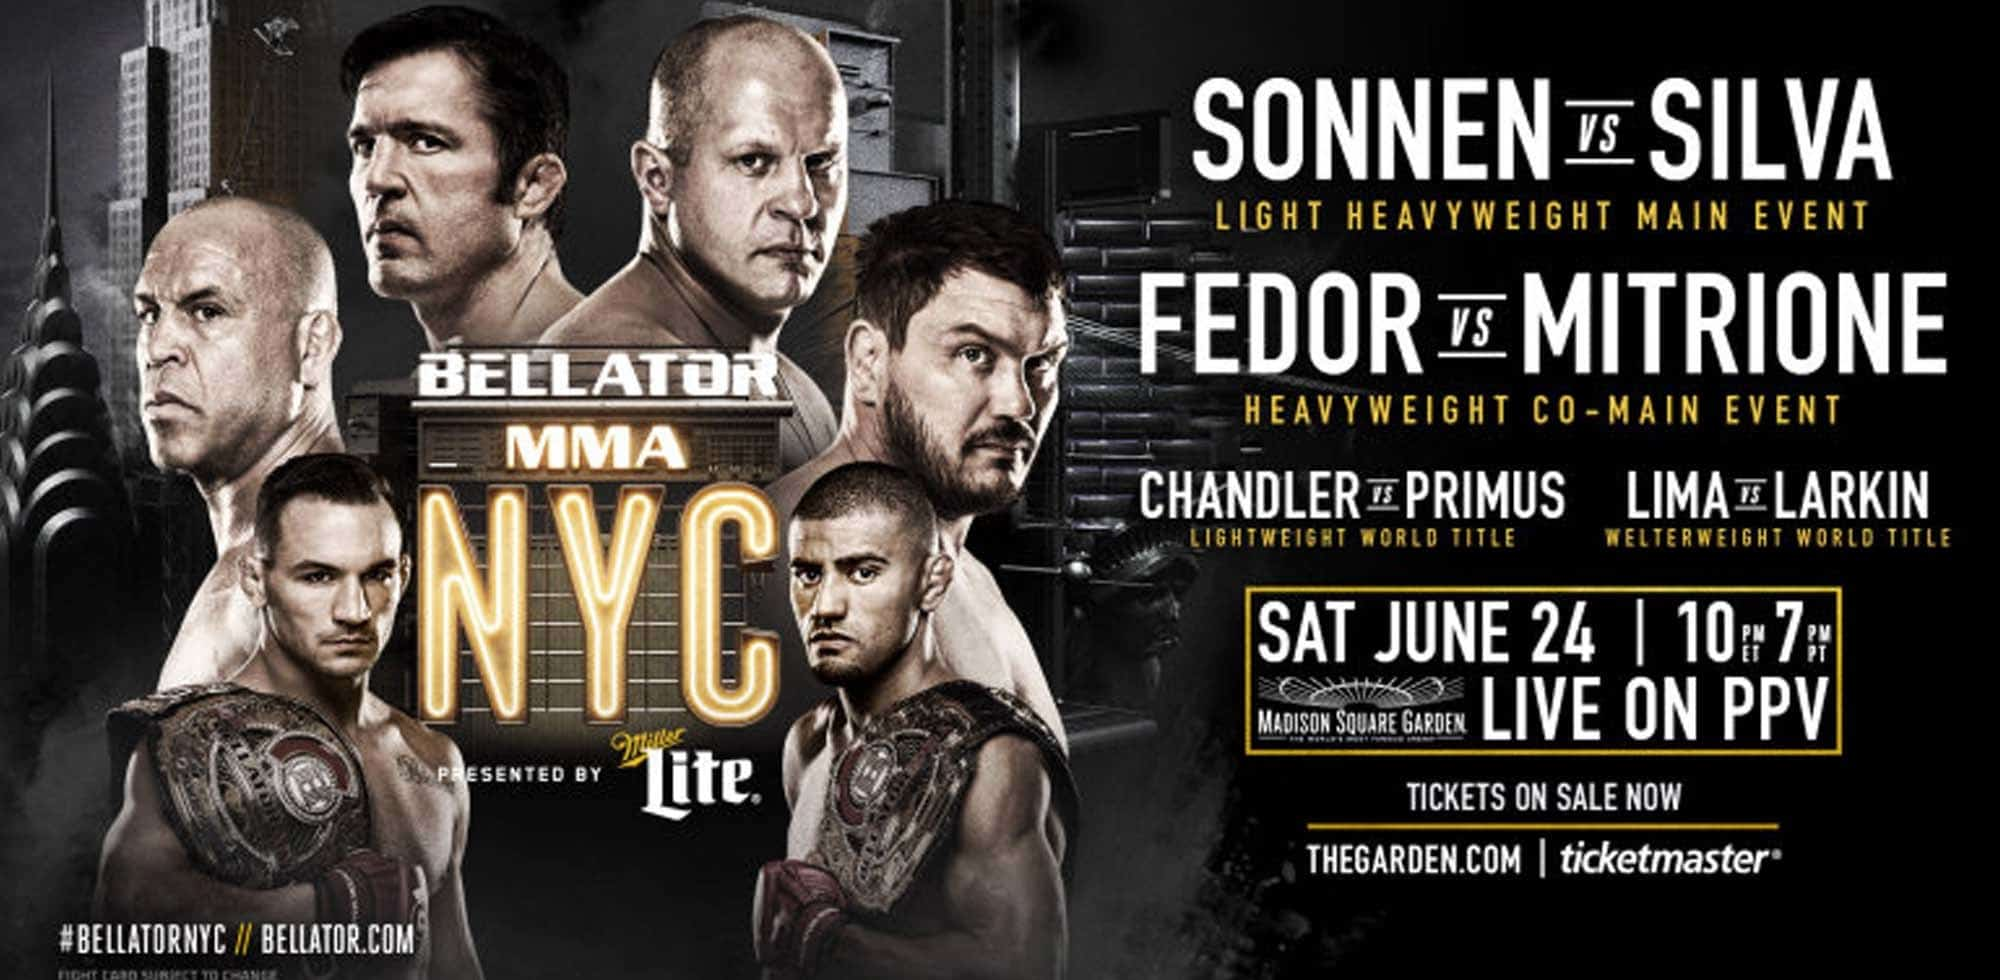 Bellator 180: Sonnen vs. Silva - Conteo Regresivo 3